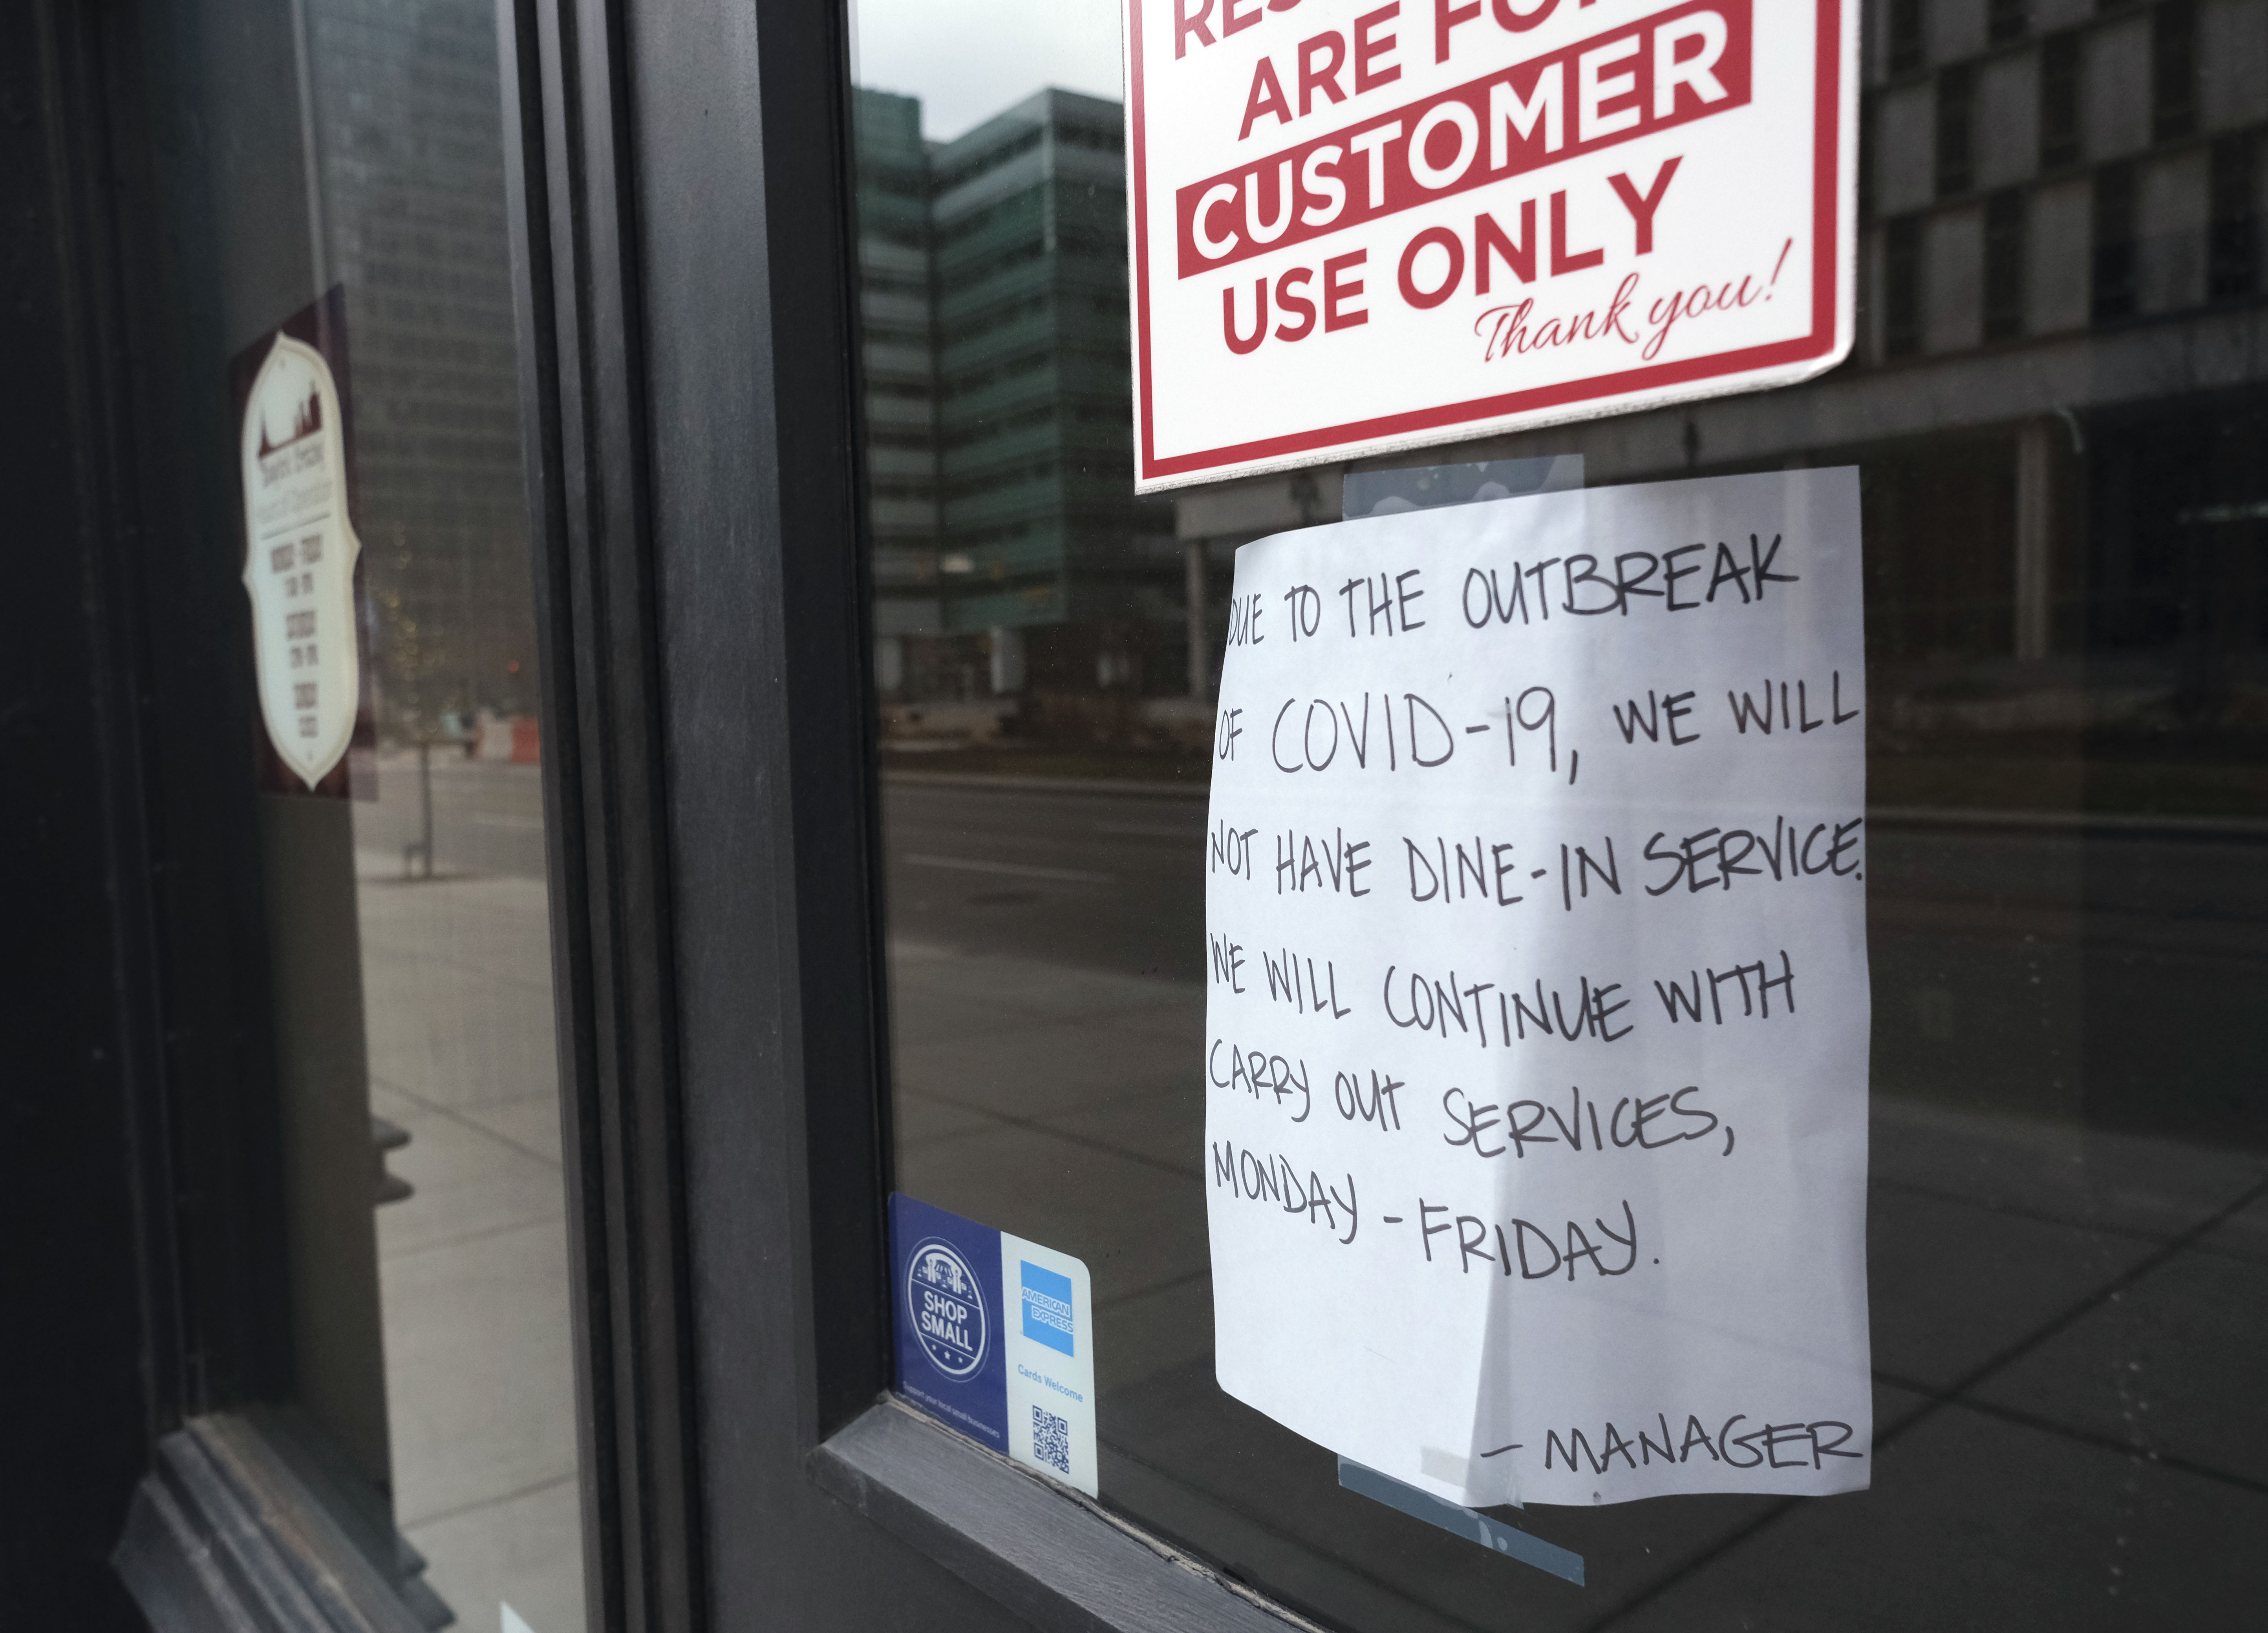 A sign explains the closure of a Detroit, Michigan restaurant due to Coronavirus (COVID-19) on March 24, 2020. - At 12:01 am Tuesday March 24,2020 Governor Gretchen Whitmer ordered a 'Stay at Home and Stay Safe Order' to slow the spread of Coronavirus (COVID-19) across the State of Michigan which now has 1,791 confirmed cases and 24 deaths due to the virus. (Photo by SETH HERALD / AFP)